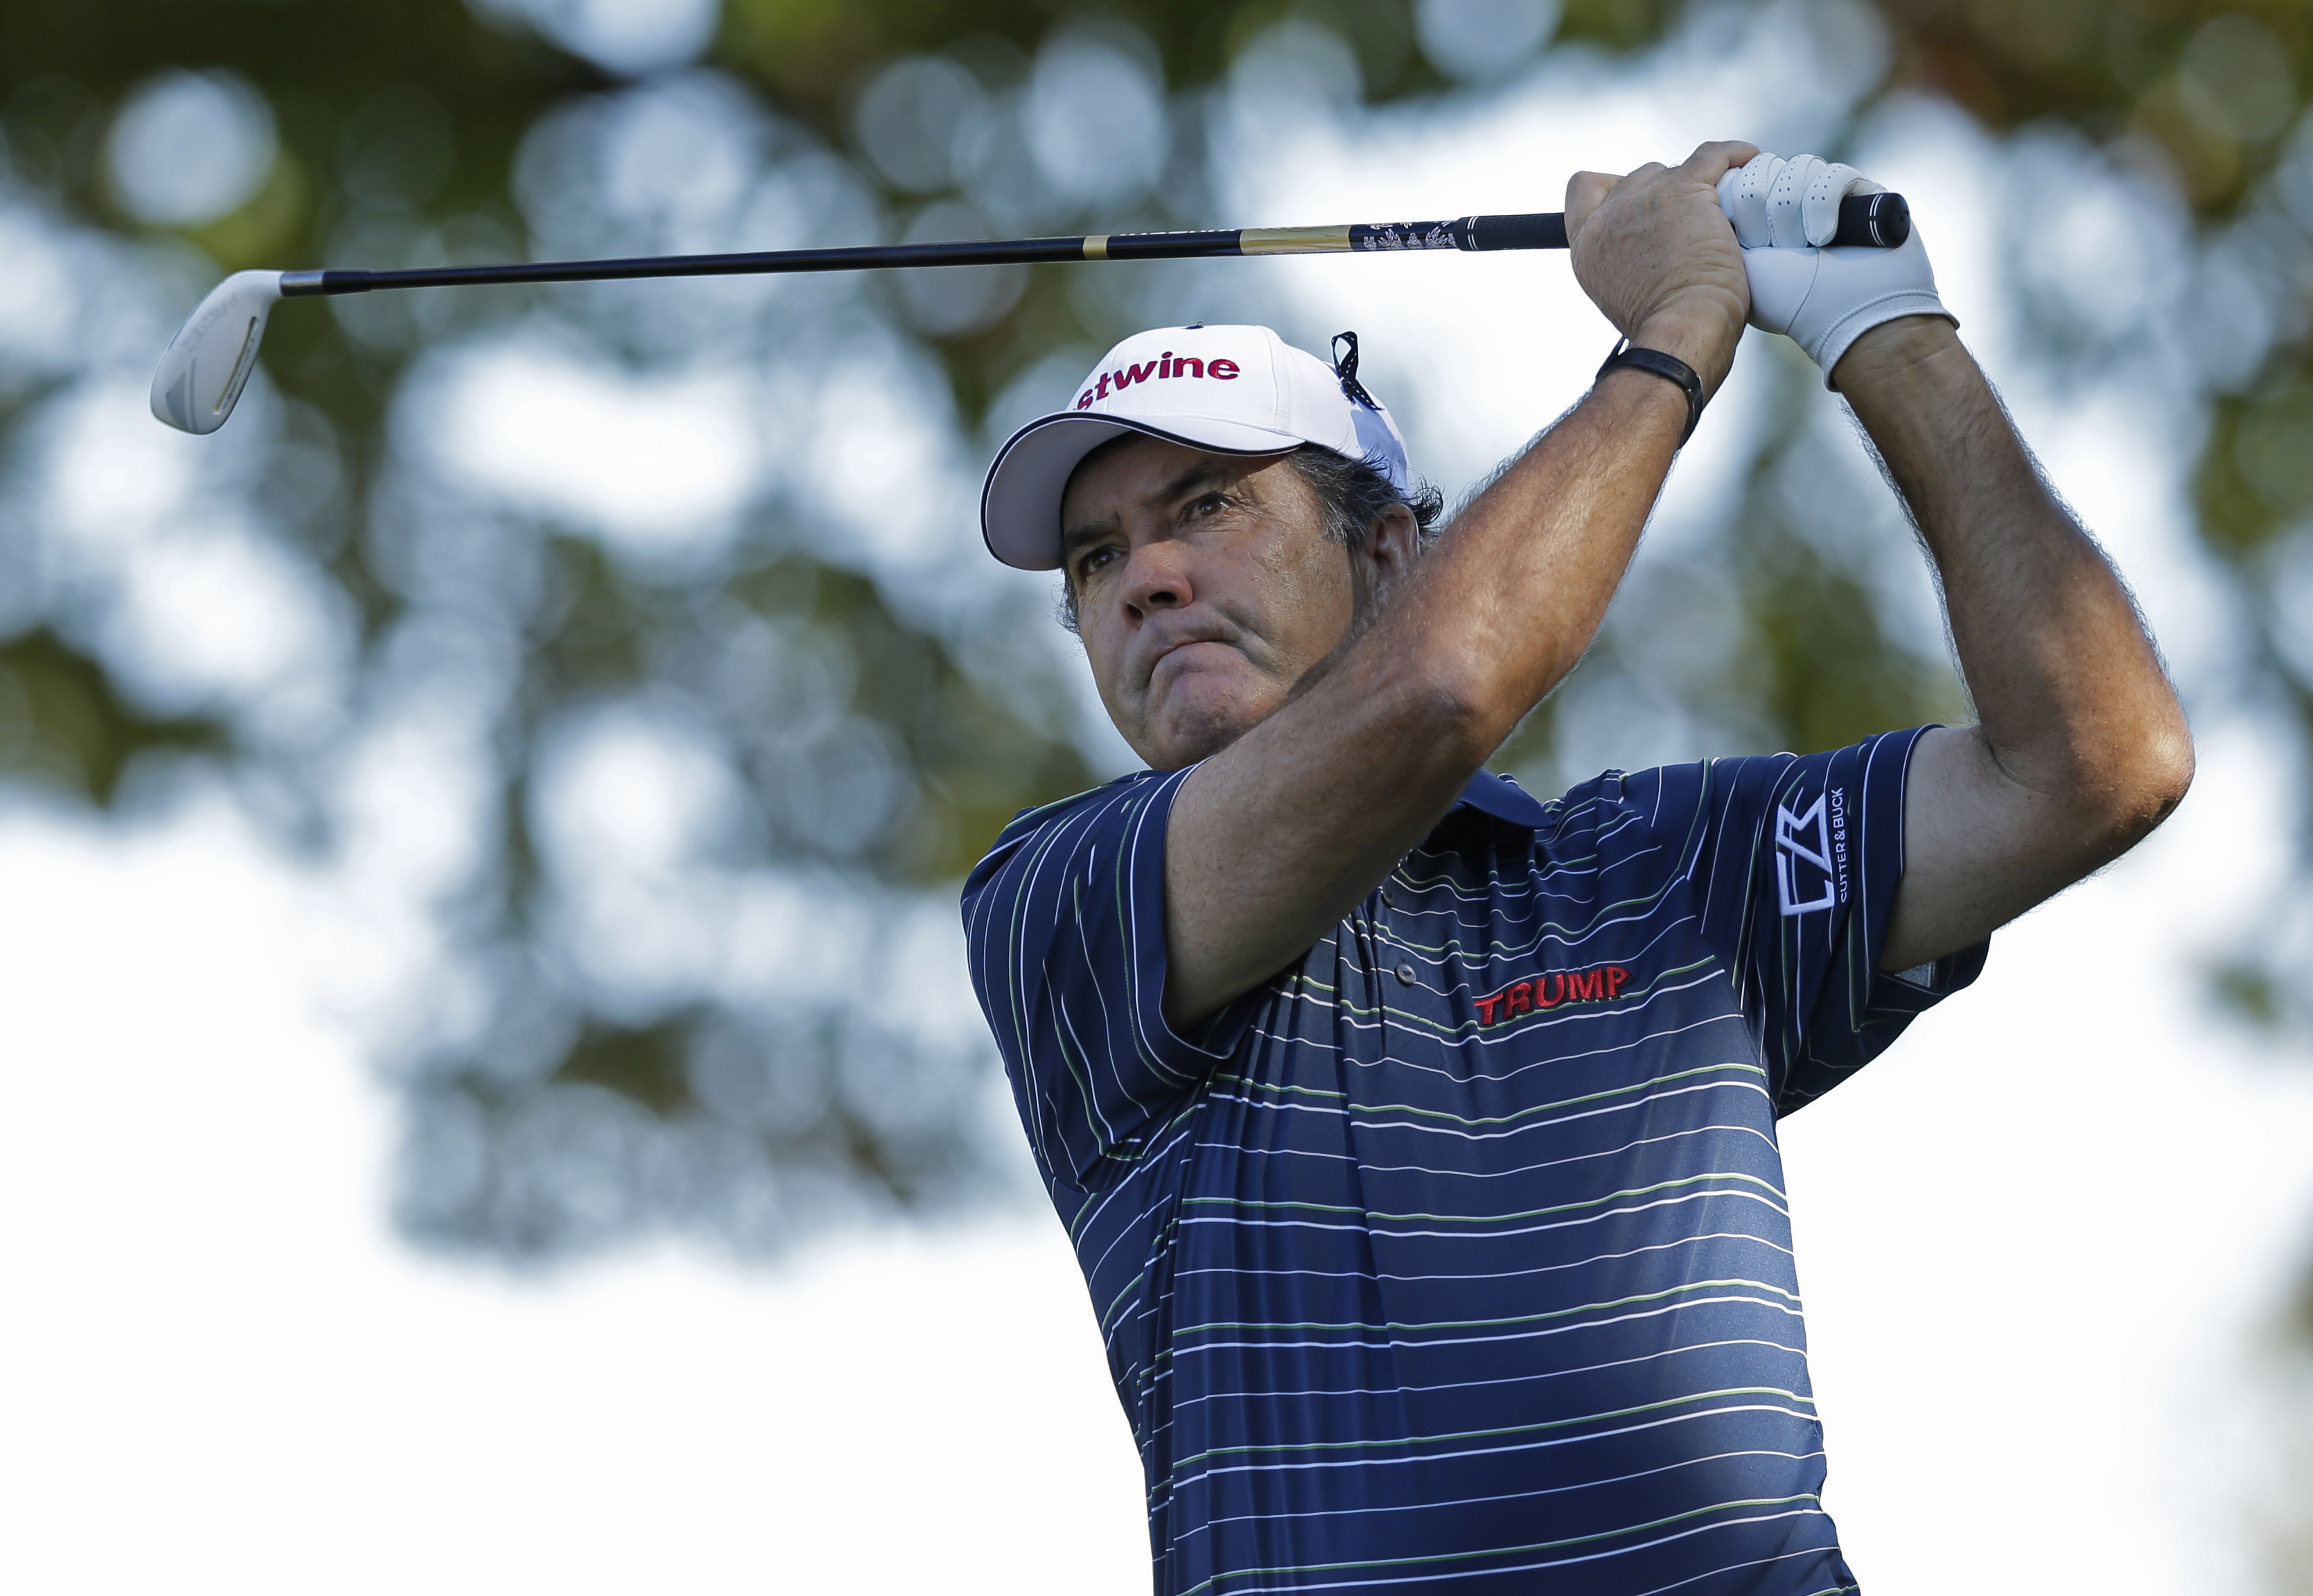 David Frost picked up another Champions Tour win Sunday.